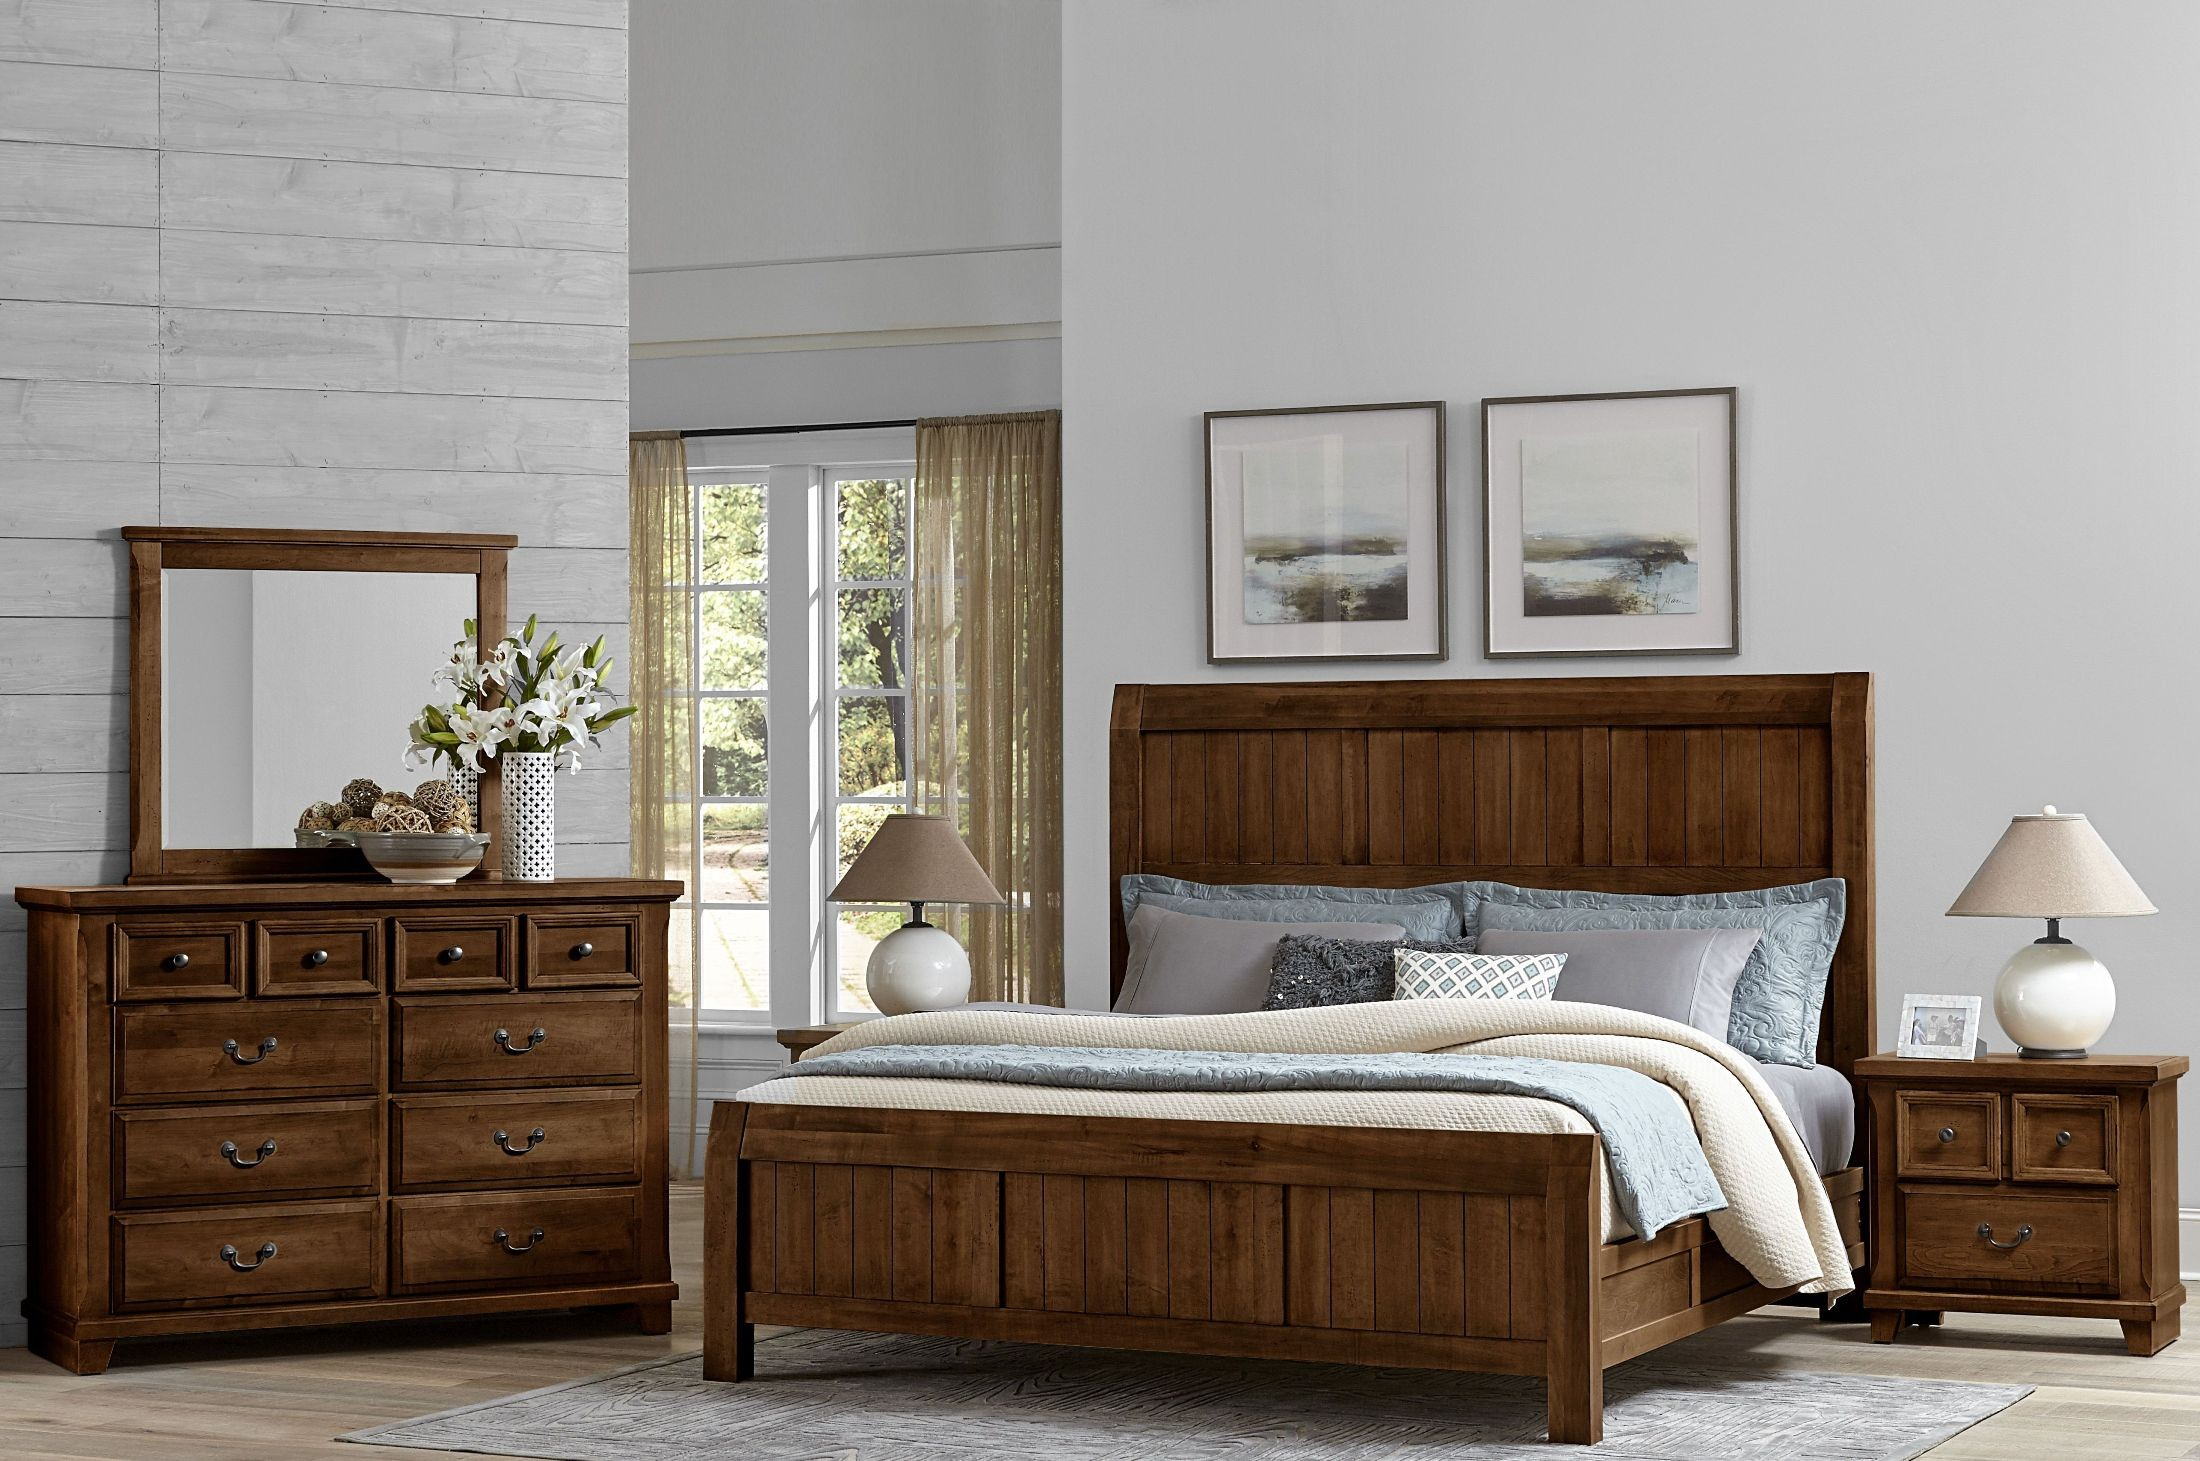 Timber Creek Rustic Cherry Timber Panel Bedroom Set From Virginia House Coleman Furniture